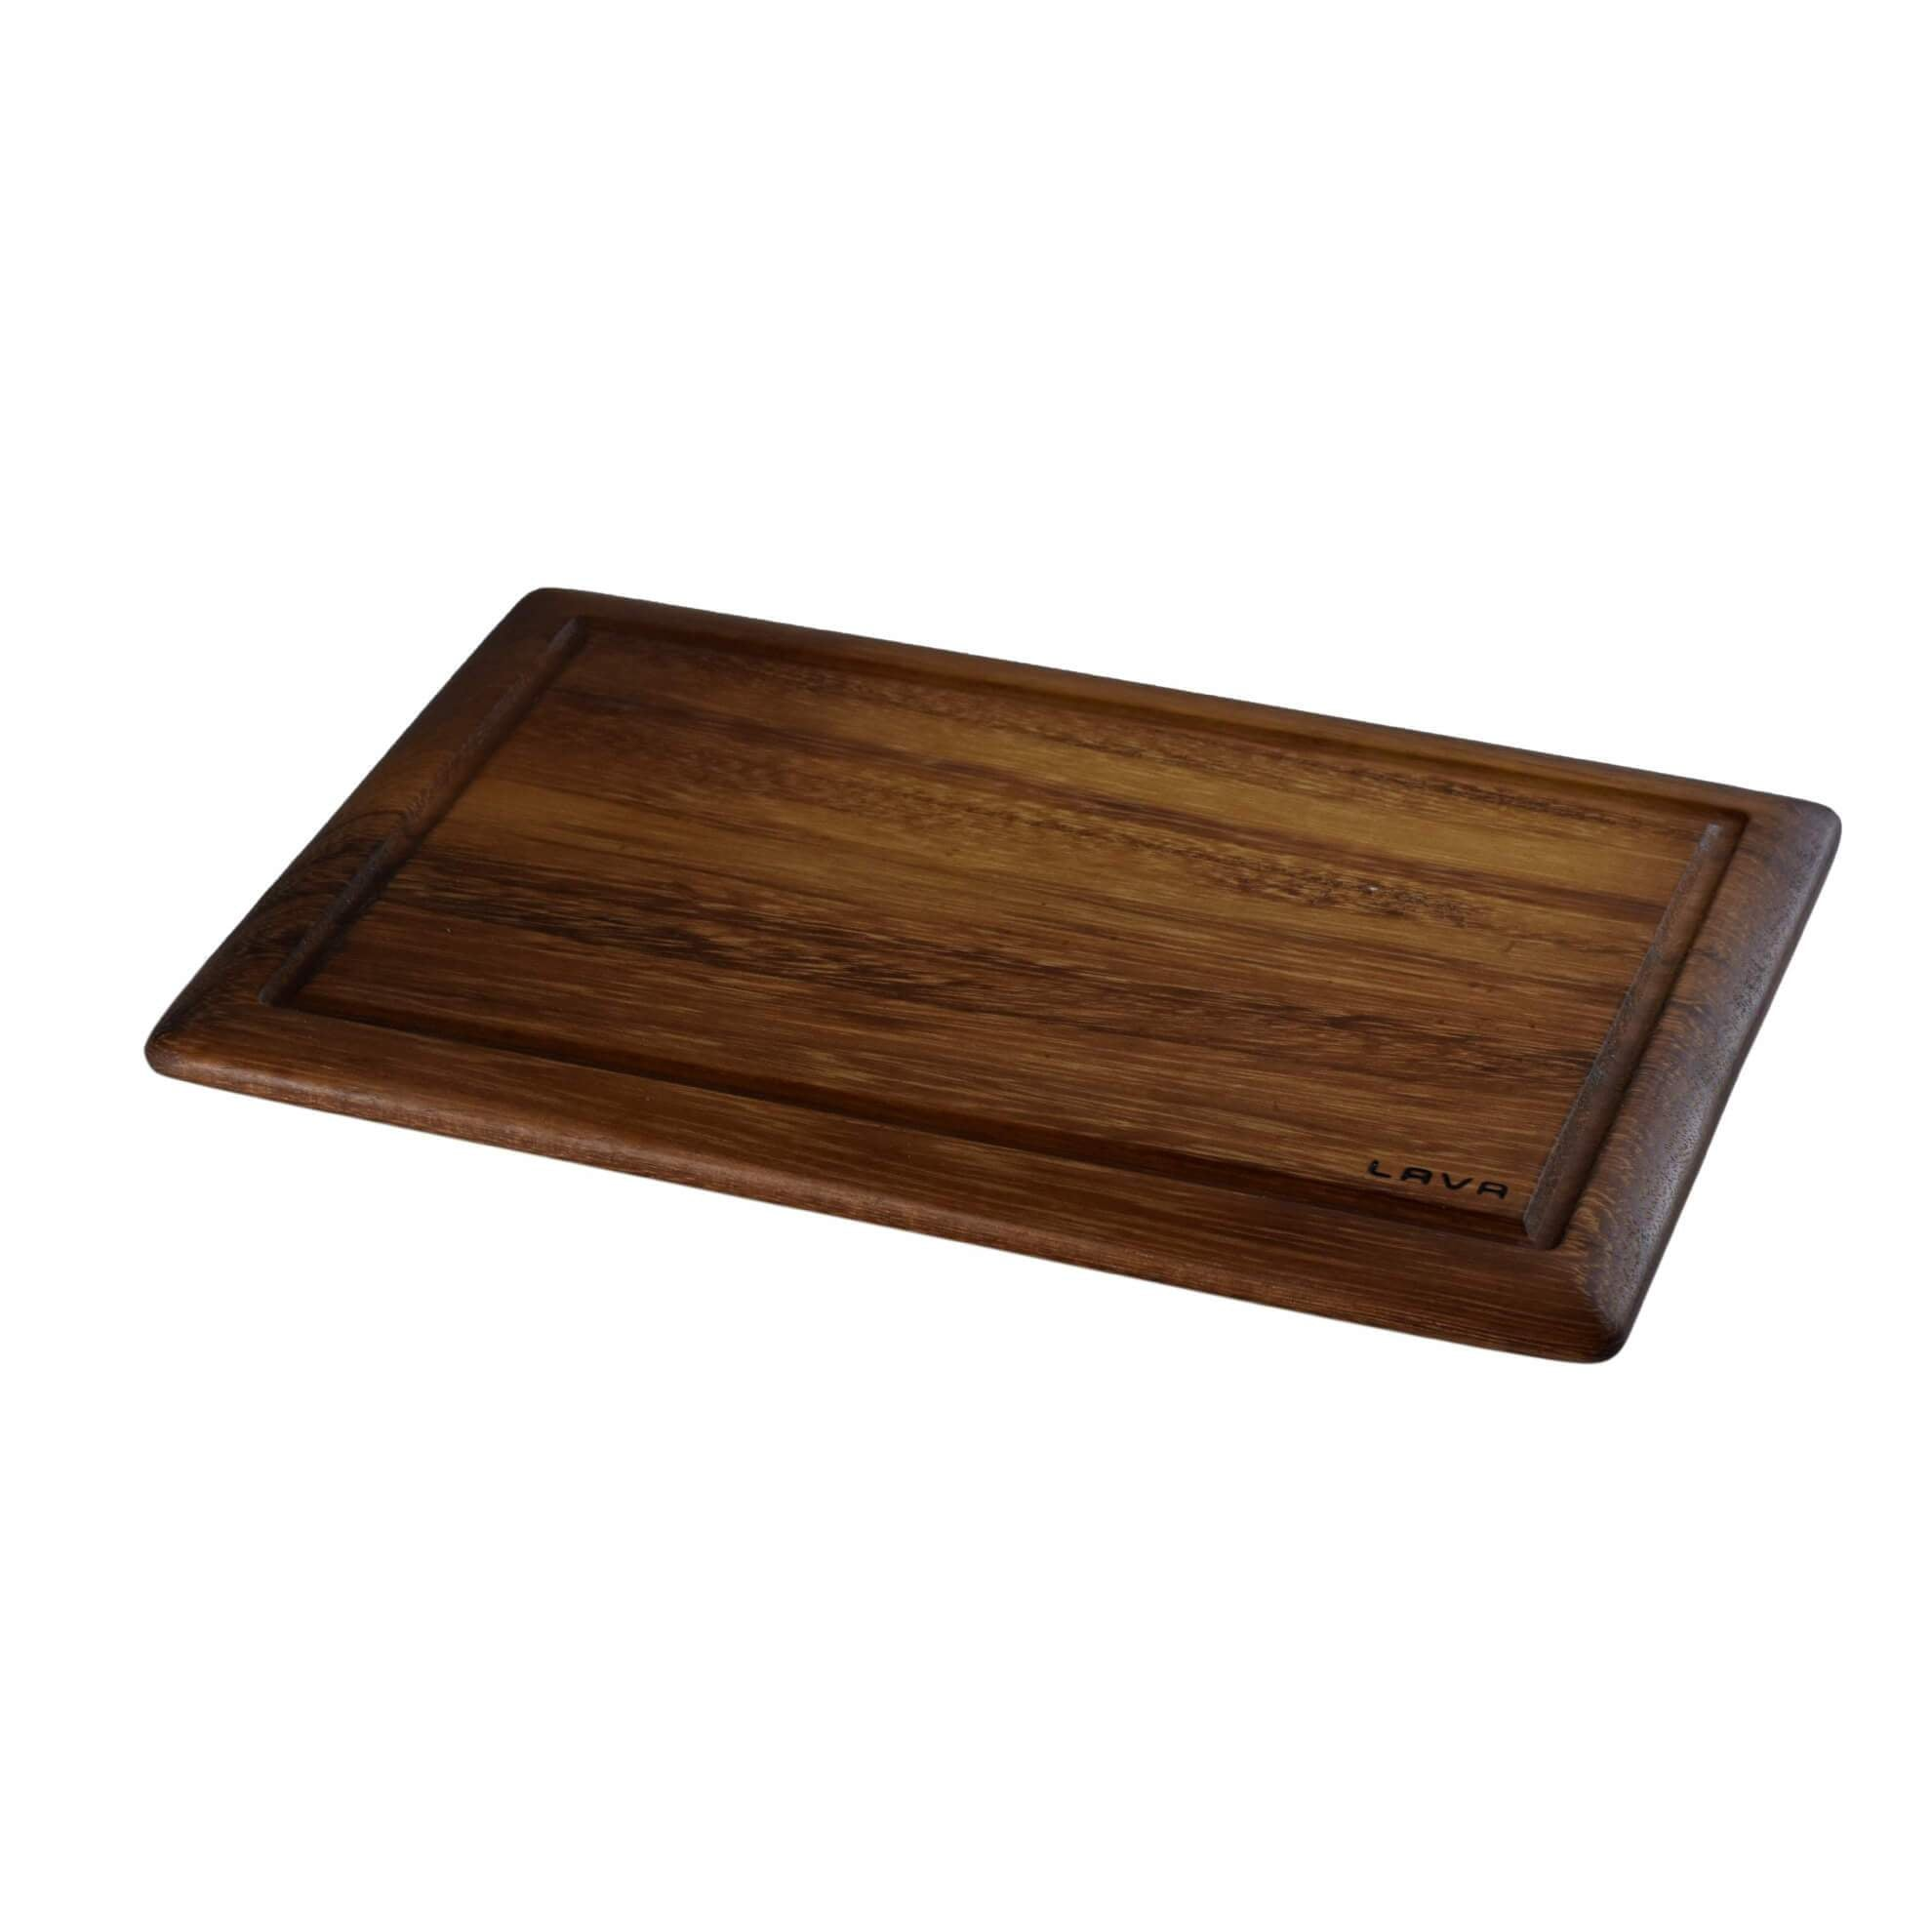 Wooden Service and Cutting Board, Rectangular, Iroko wood. Dimension 25x35cm.